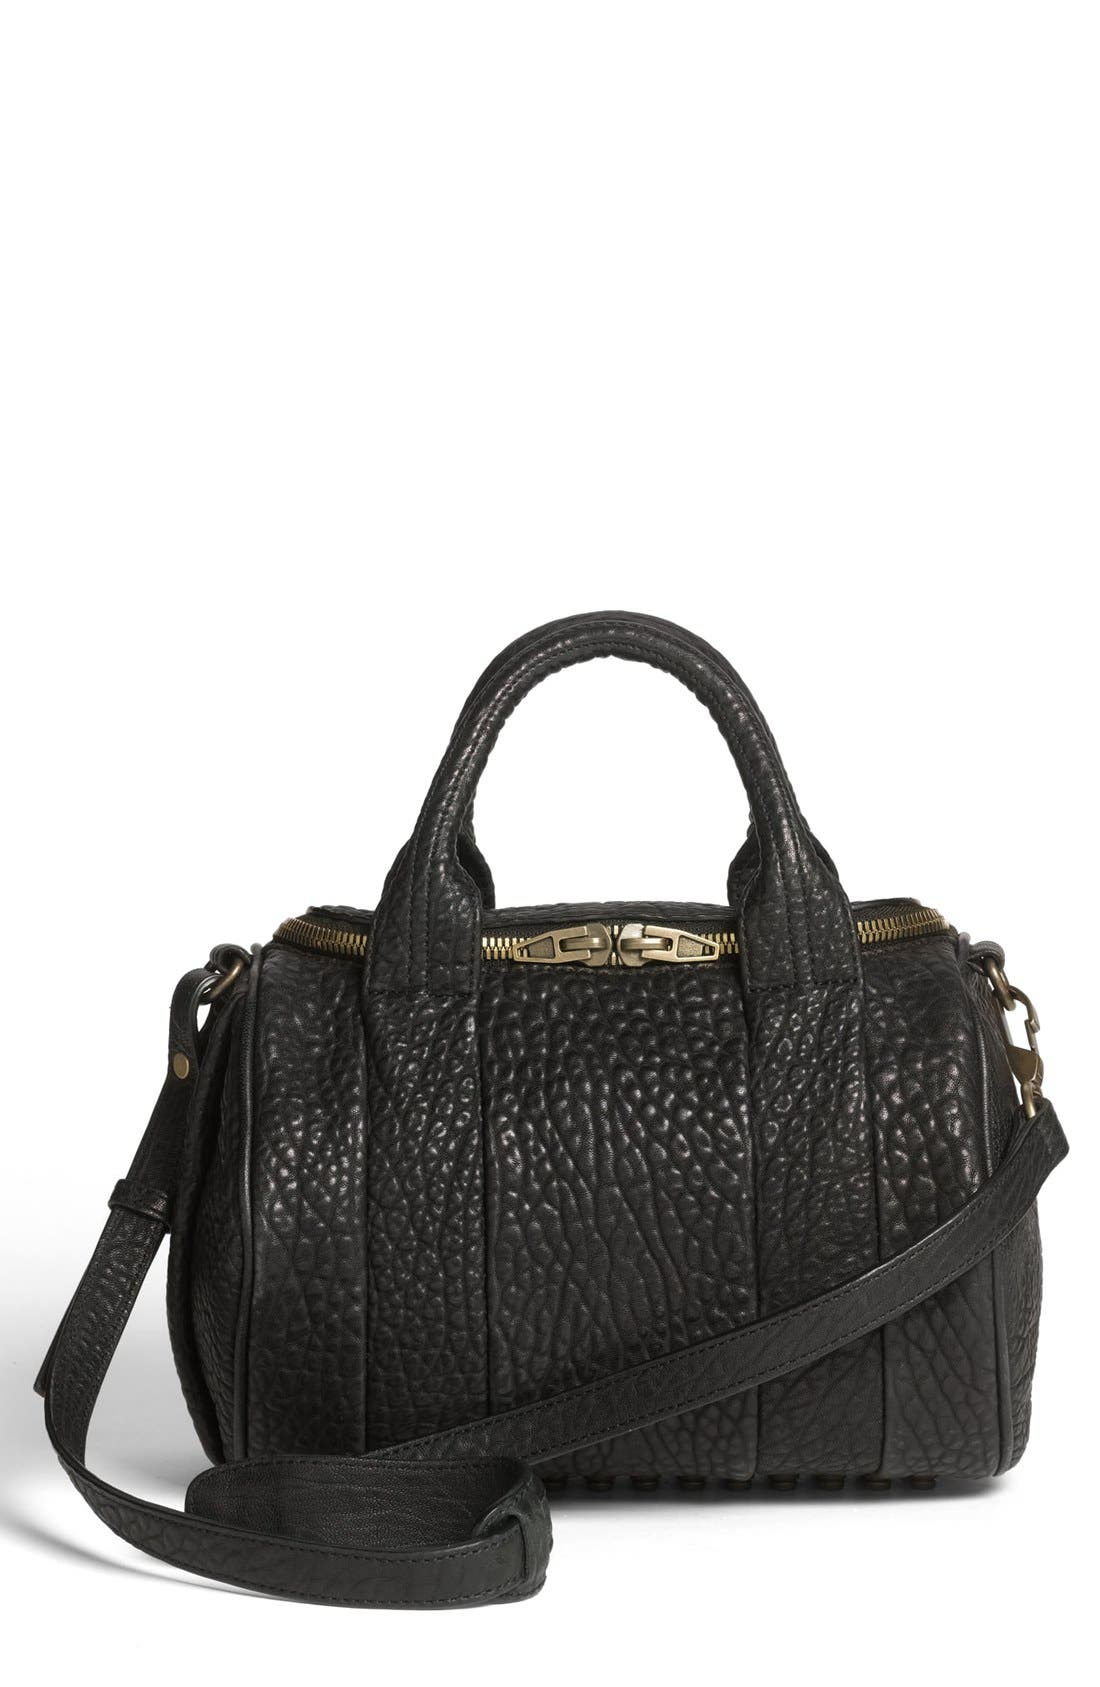 Main Image - Alexander Wang 'Rockie - Antique Brass' Leather Crossbody Satchel